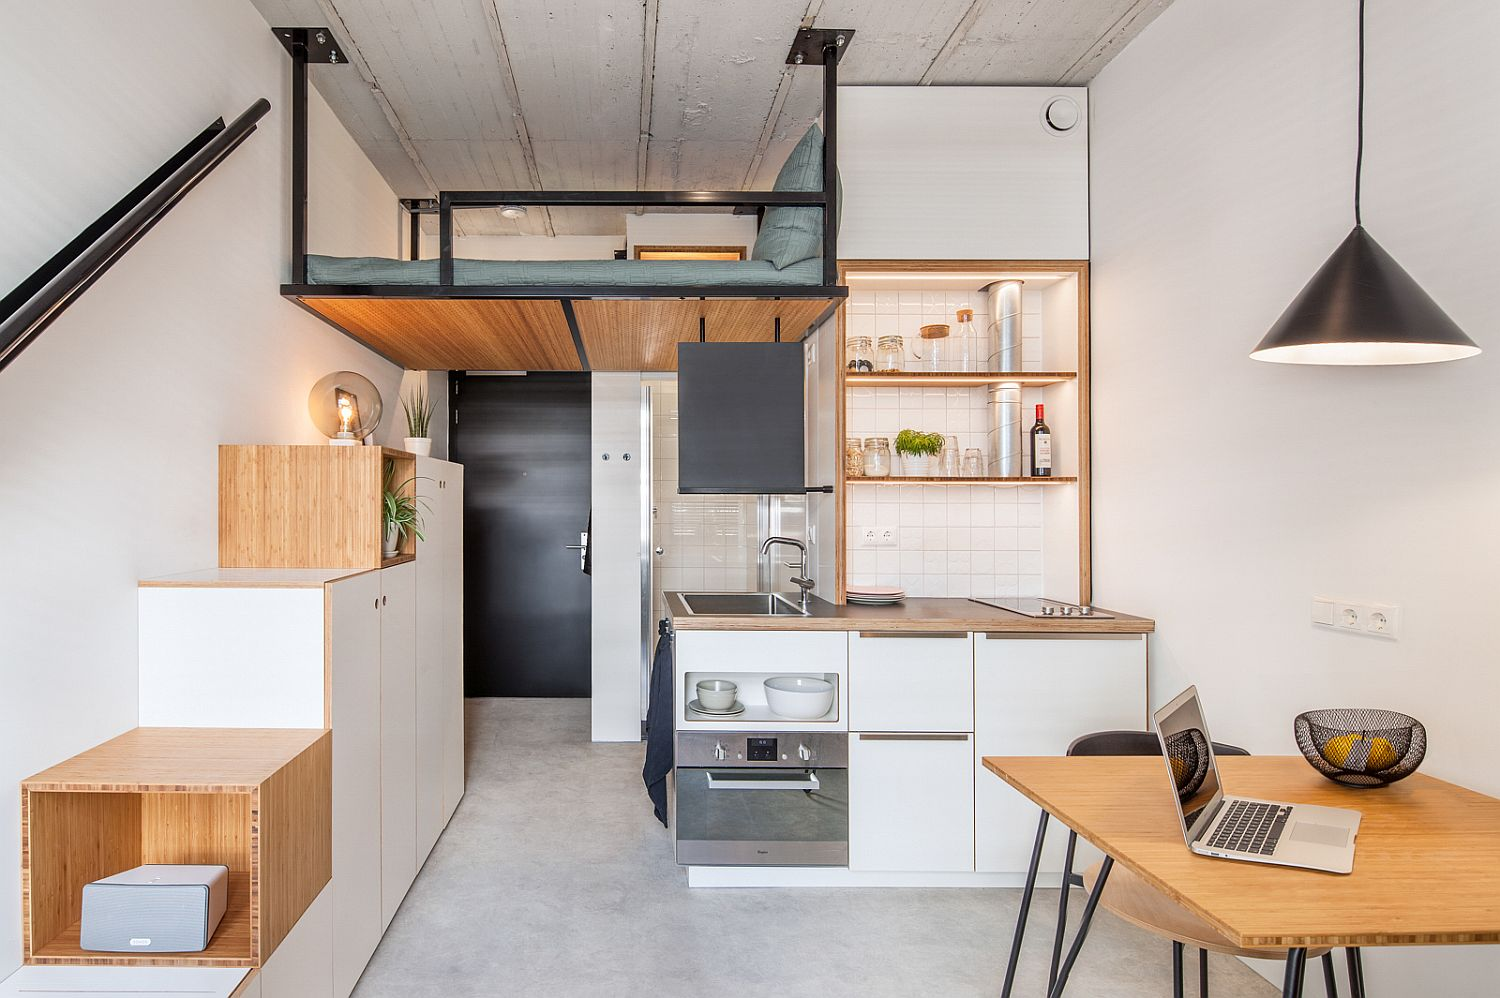 Ultra-small student apartment living with loft bed above and steps with storage